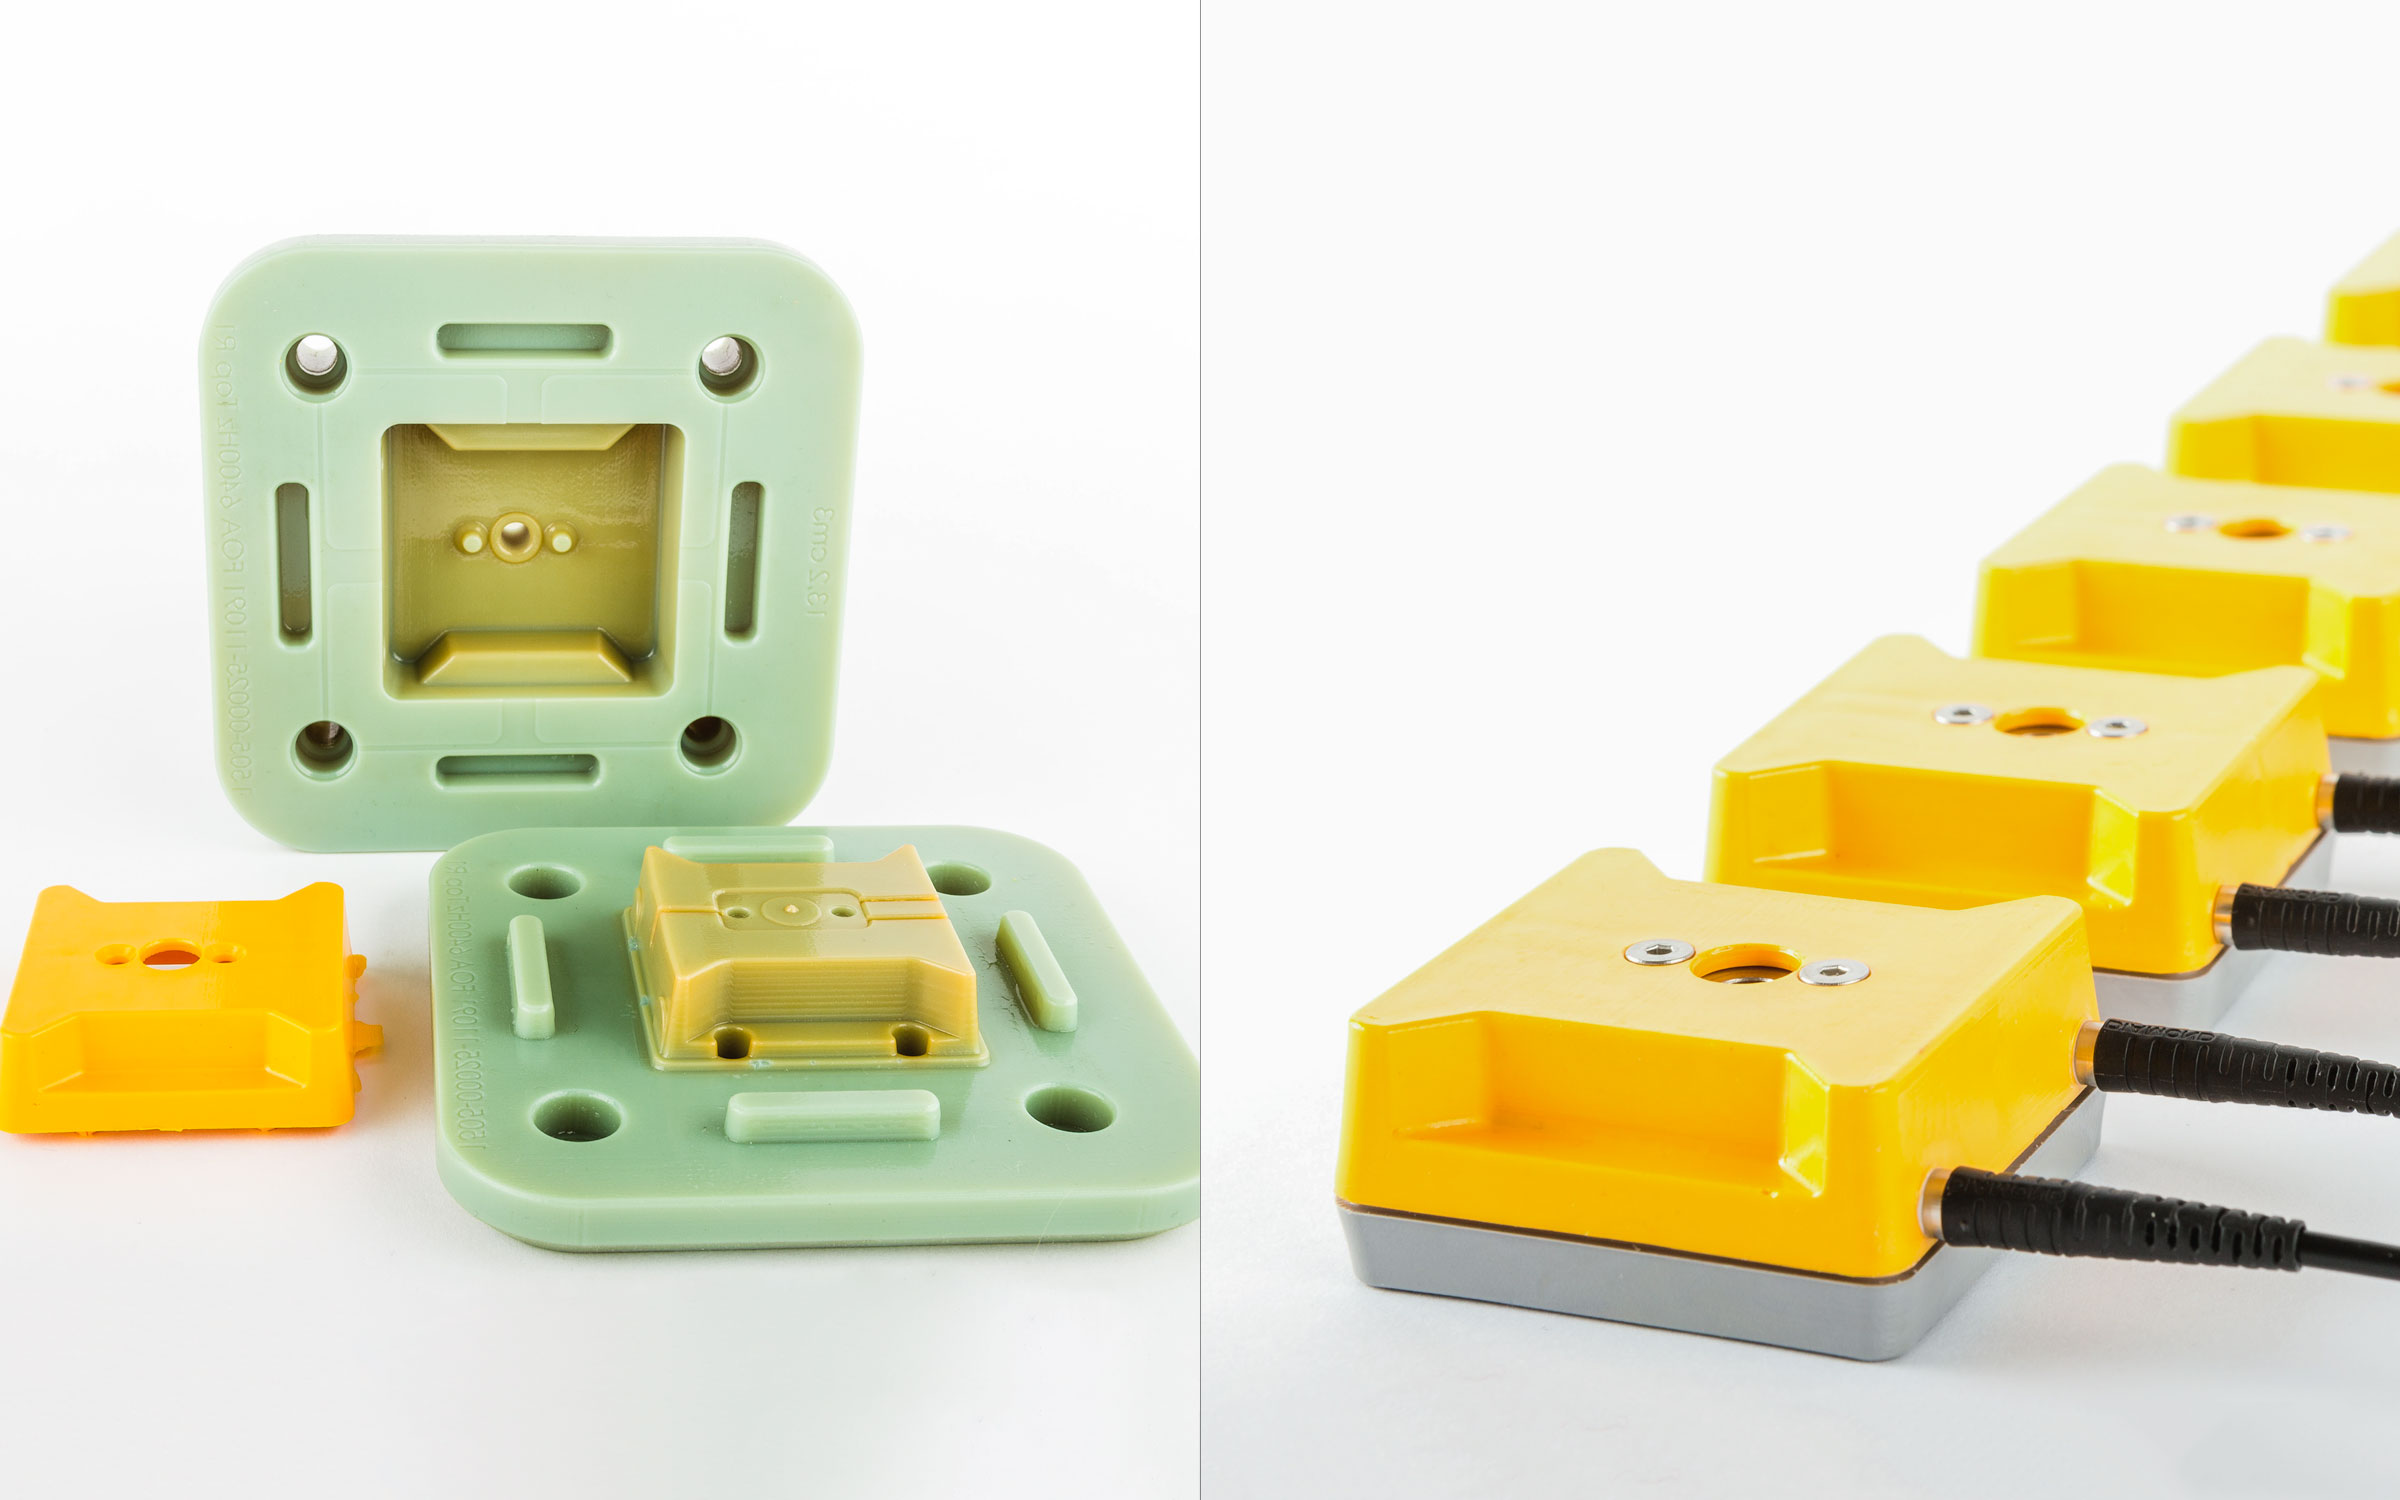 3D Printing low-run injection molds | 3D Hubs